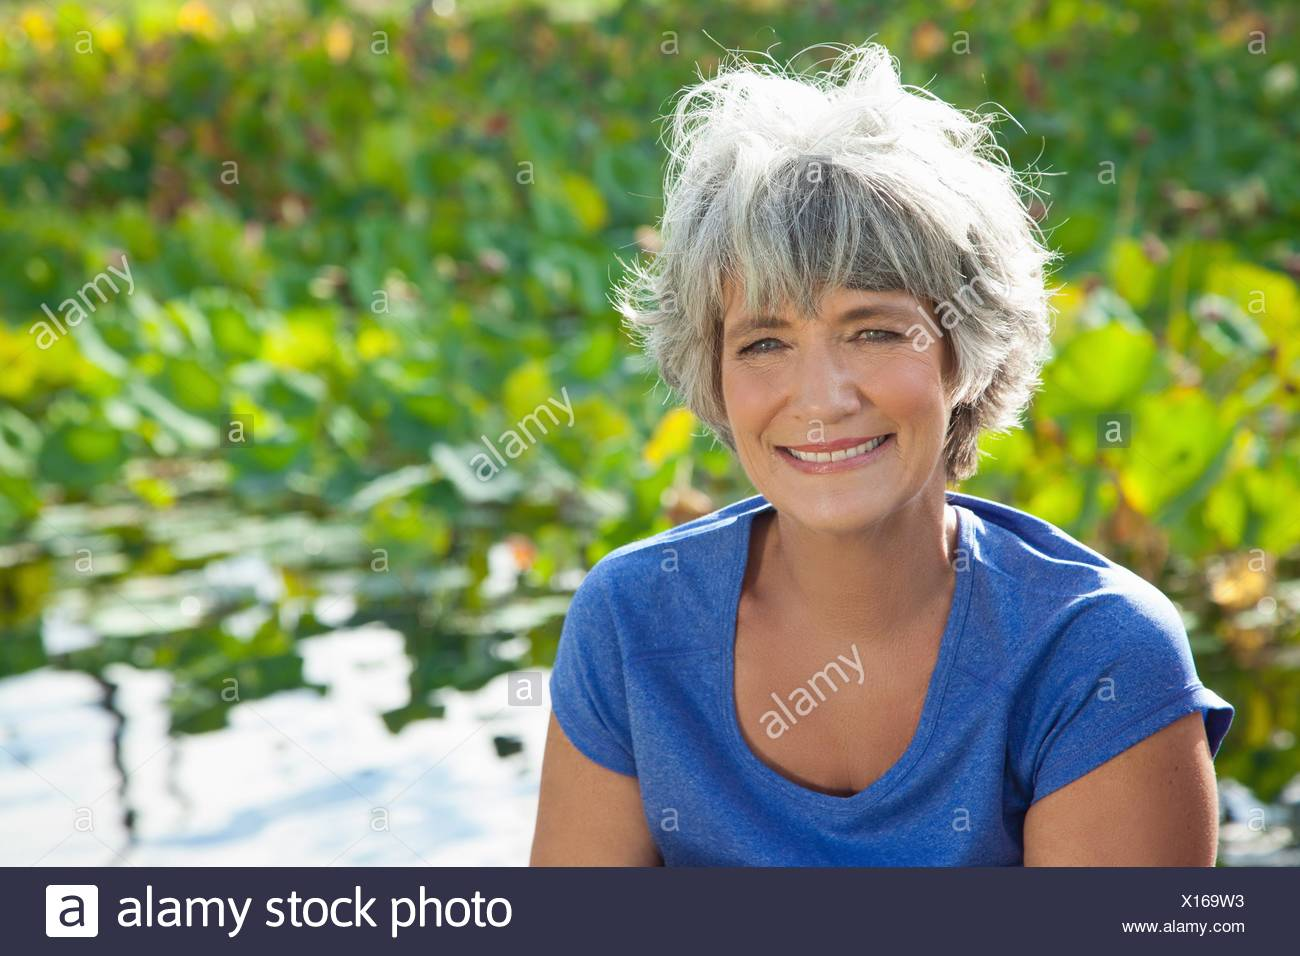 Portrait of mature woman, smiling, outdoors - Stock Image